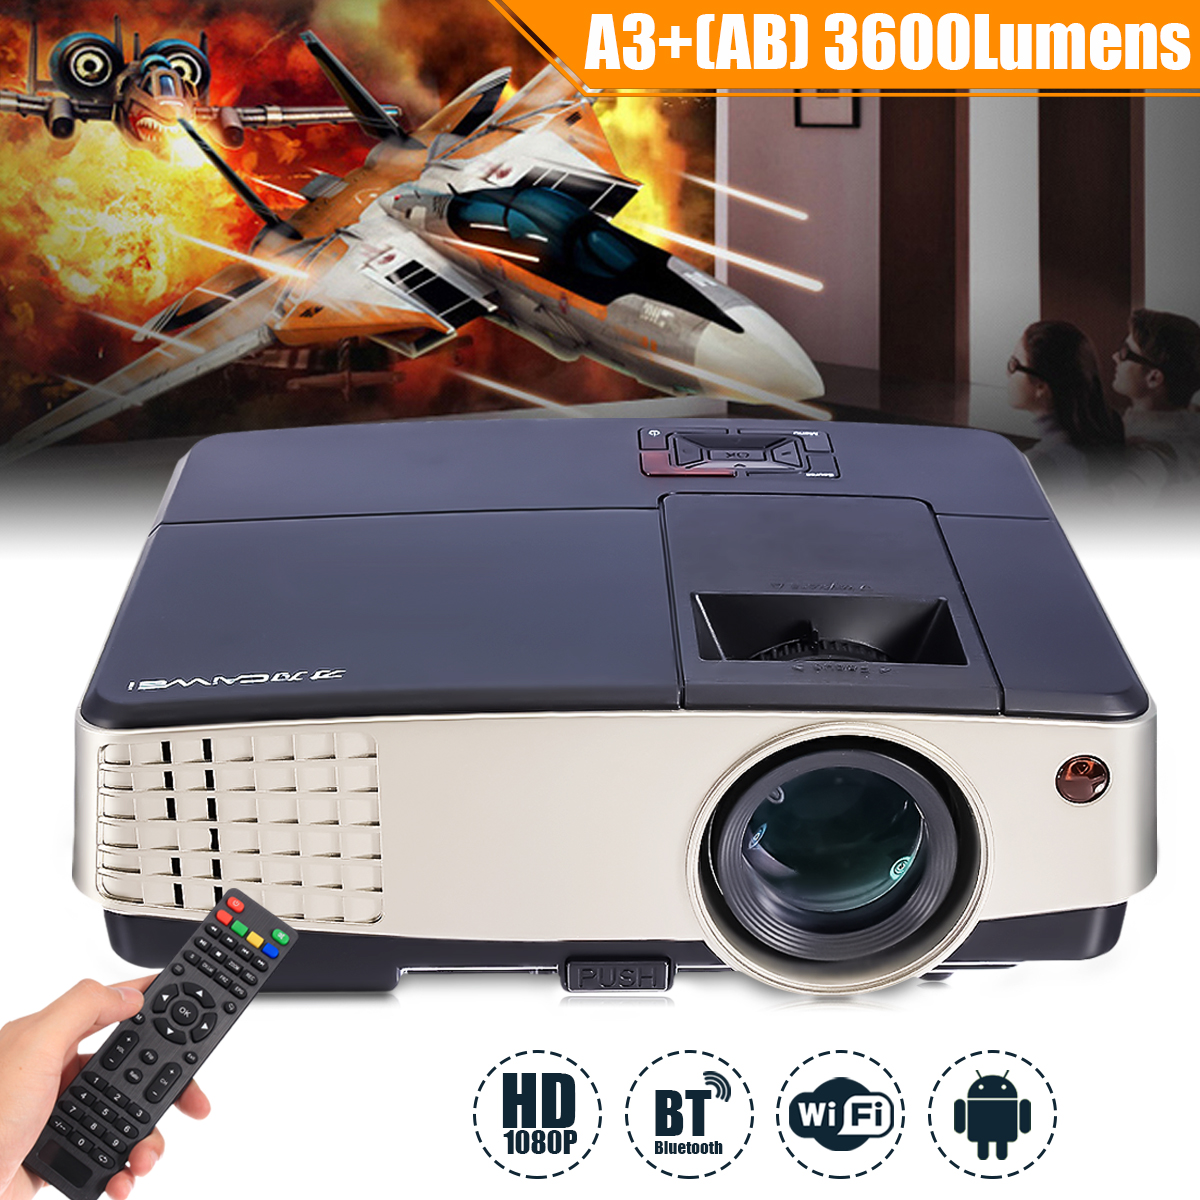 3600 Lumens A3+AB Projector 1080P Full HD LCD Wifi Home Theater Cinema 72W LED Android 4.4 Bluetooth Multimedia Beamer original nfp 3600 n a3 nfp 3600 n a3 bga chipset graphic